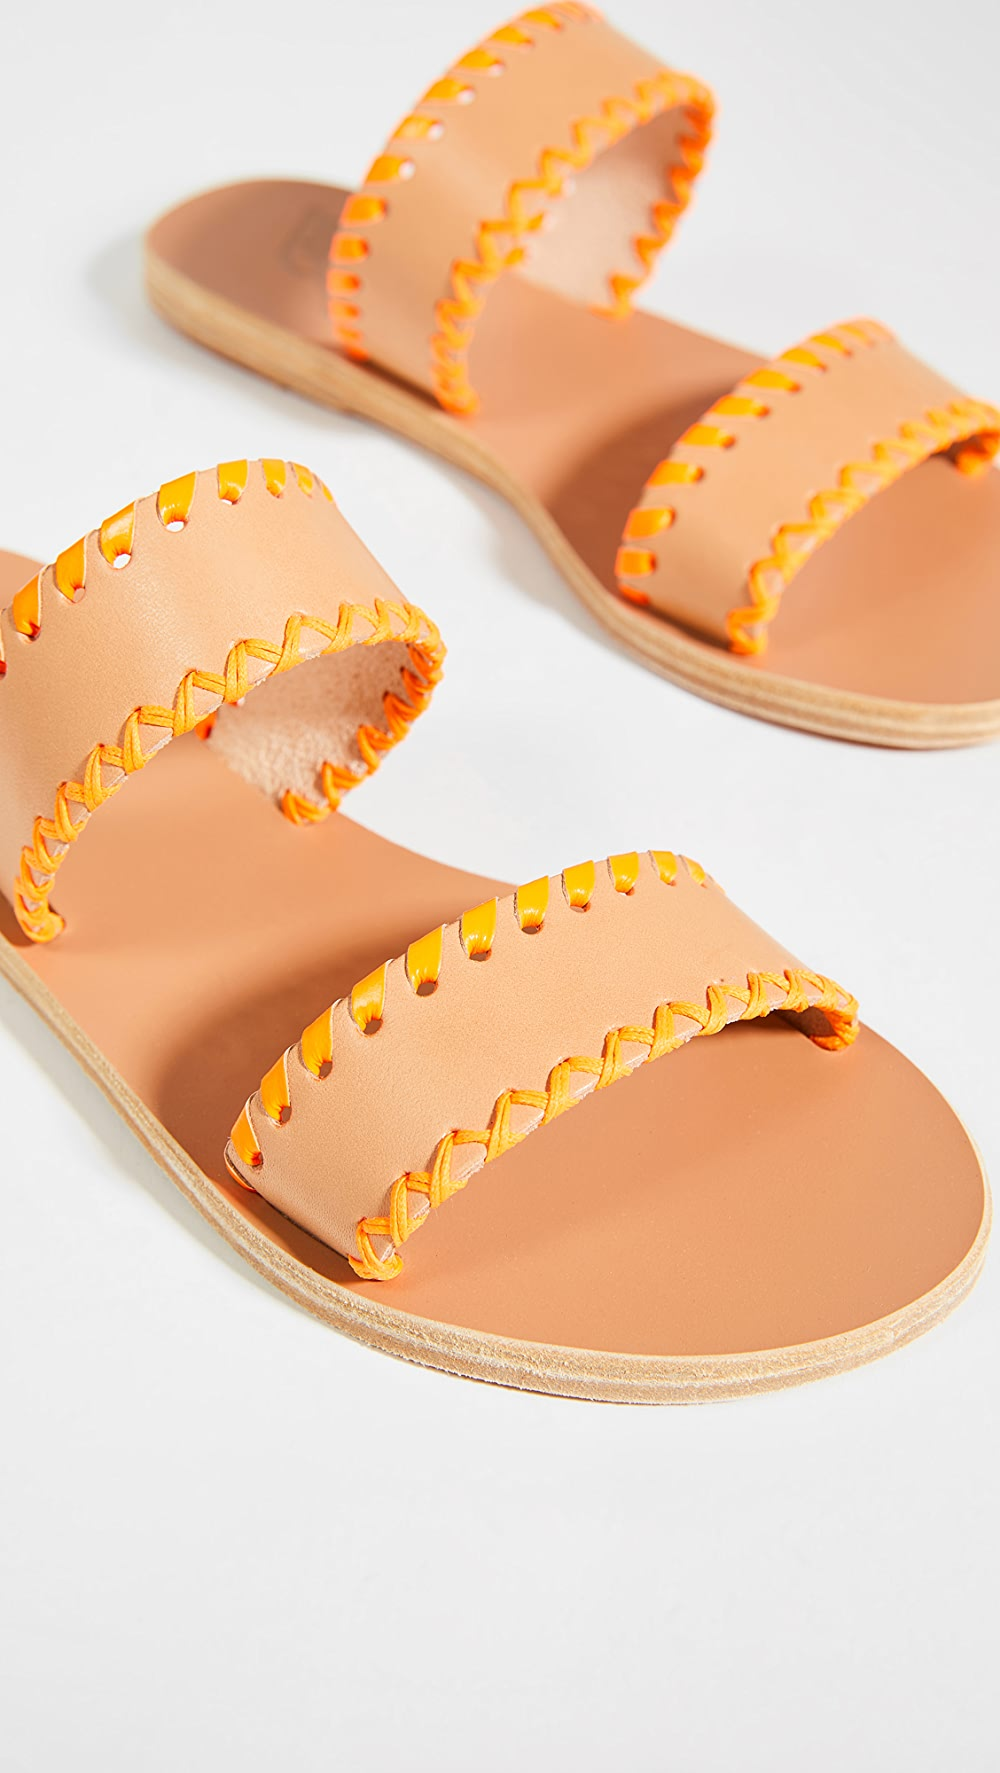 Generous Ancient Greek Sandals - Melia Stitch Slides New Varieties Are Introduced One After Another